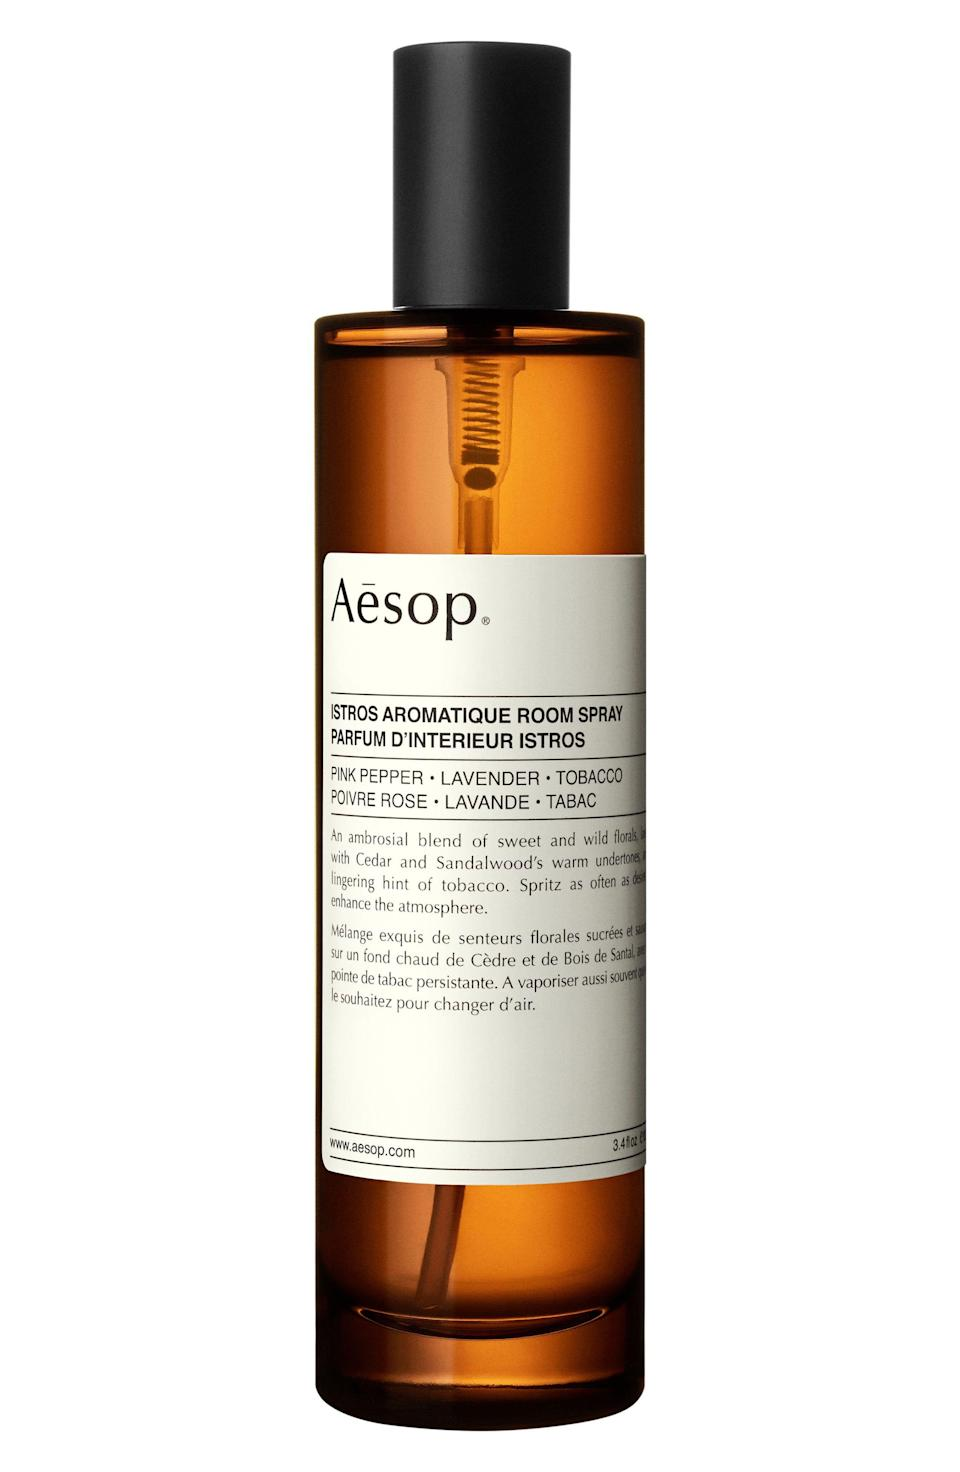 """<p><strong>AESOP</strong></p><p>nordstrom.com</p><p><strong>$55.00</strong></p><p><a href=""""https://go.redirectingat.com?id=74968X1596630&url=https%3A%2F%2Fshop.nordstrom.com%2Fs%2Faesop-aromatique-room-spray%2F4617743&sref=https%3A%2F%2Fwww.menshealth.com%2Ftechnology-gear%2Fg35237975%2Flong-distance-relationship-gifts%2F"""" rel=""""nofollow noopener"""" target=""""_blank"""" data-ylk=""""slk:BUY IT HERE"""" class=""""link rapid-noclick-resp"""">BUY IT HERE</a></p><p>You might not be sharing the same home but that doesn't mean you can't find some similarities. Gift them (and yourself) the same glorious room spray. When one of you visits the other, you'll already feel at home. </p>"""